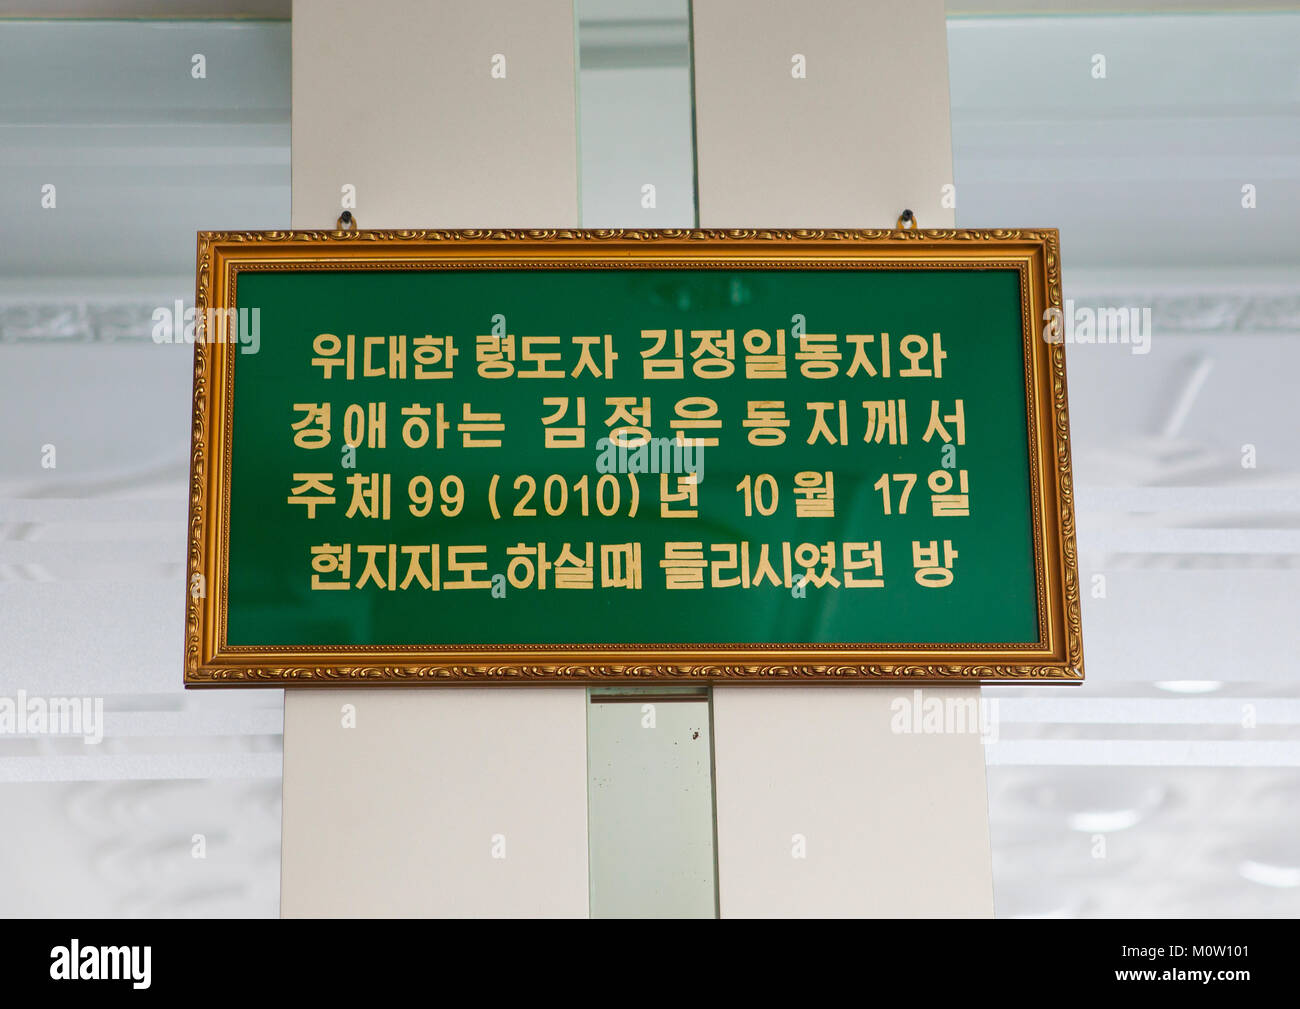 Billboard to show the place that Kim Jong-il and beloved and respected comrade Kim jong-un visited during their Stock Photo